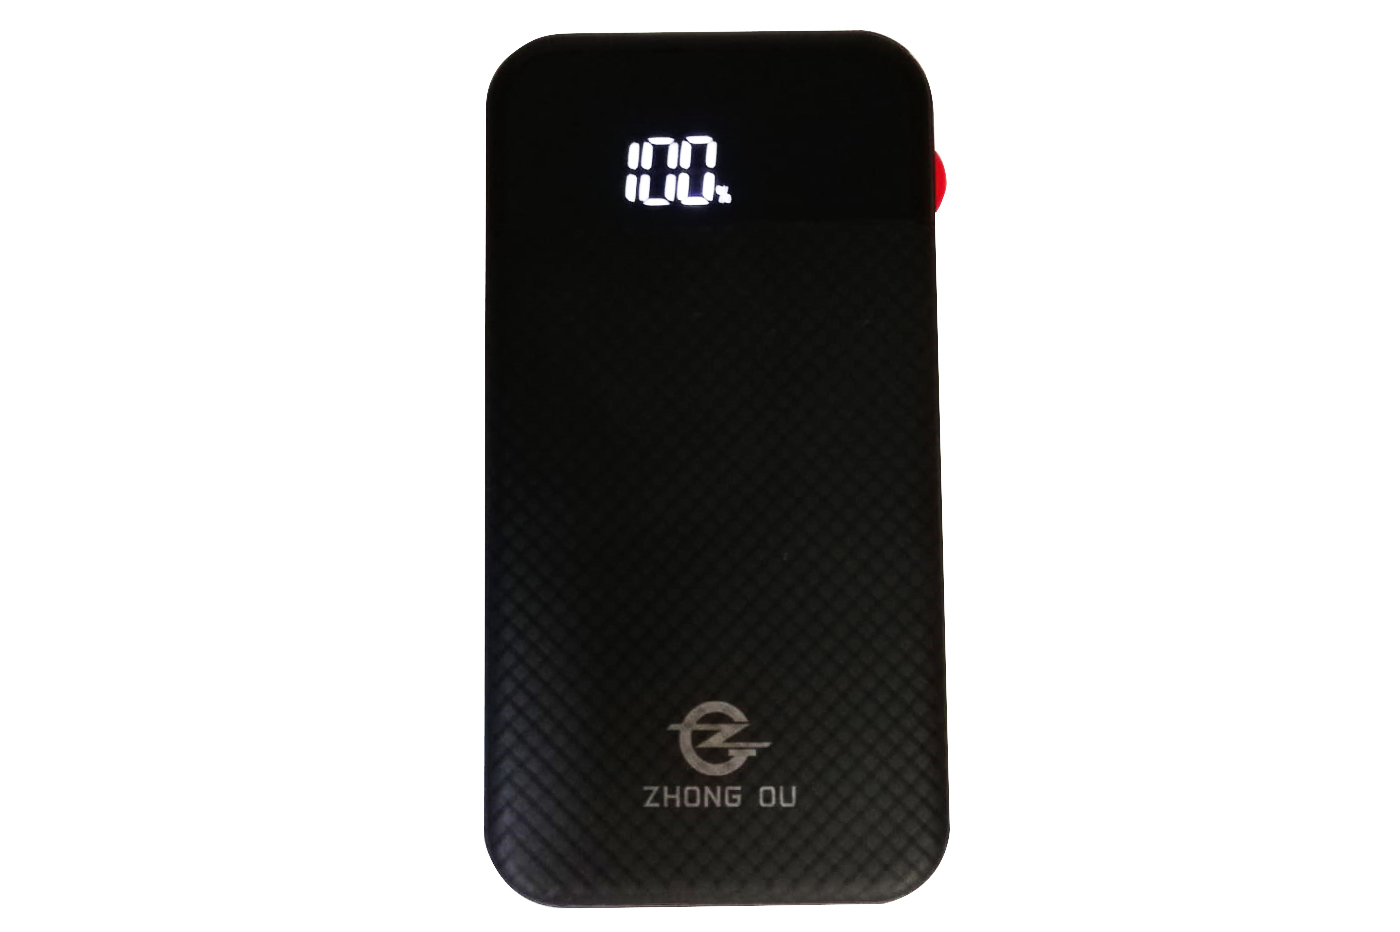 Caricatore portatile power bank cavo integrato e USB batteria 11000mAh LED FO26